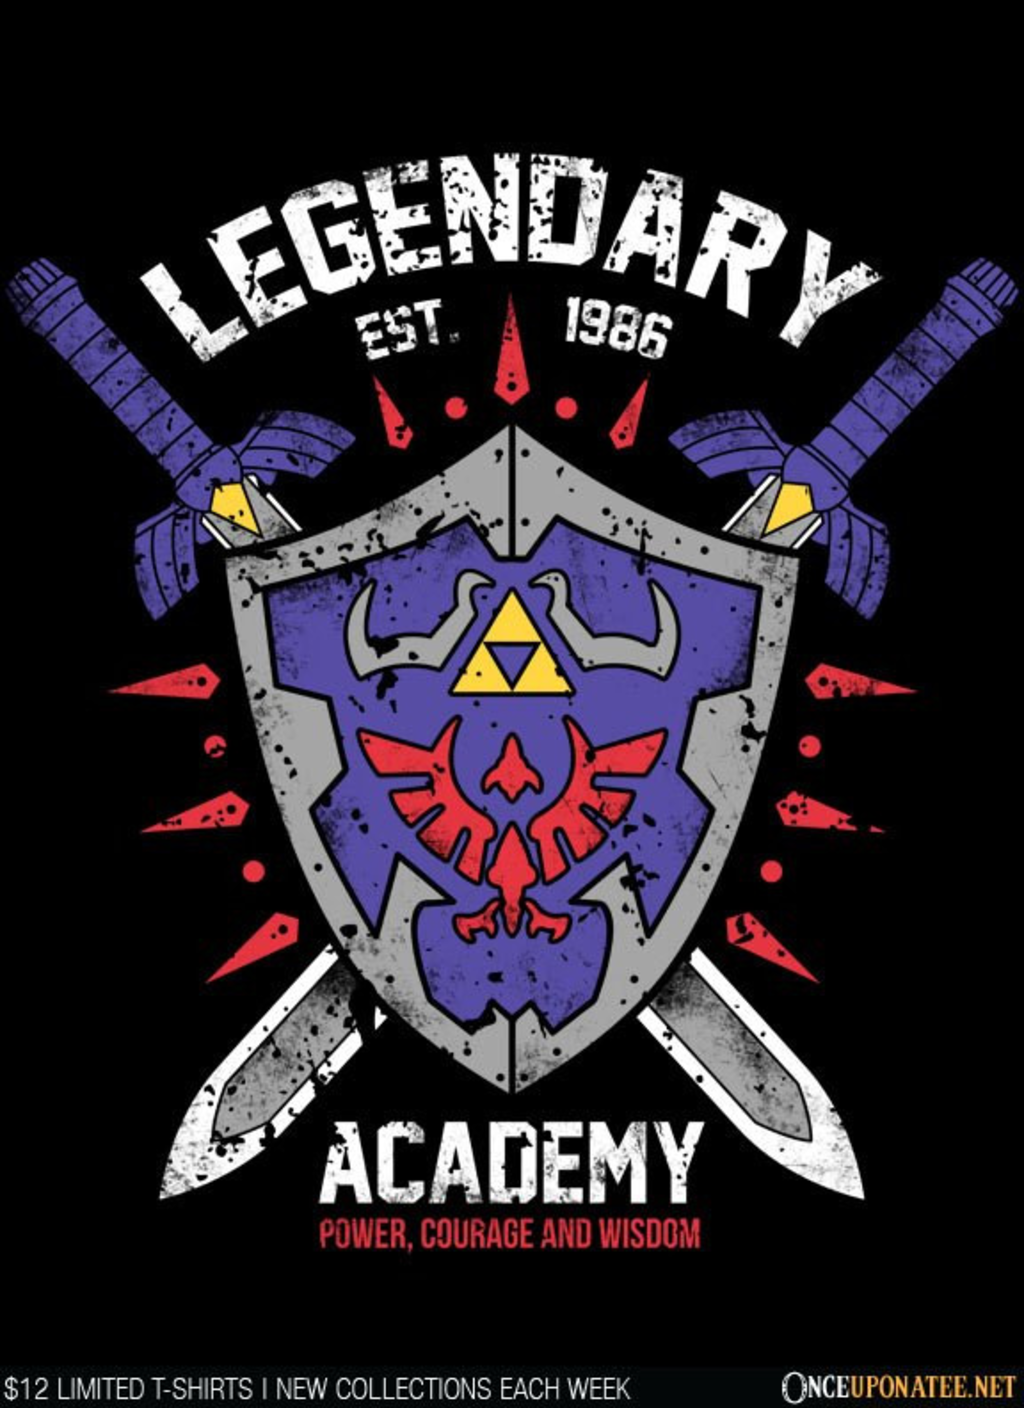 Once Upon a Tee: Legendary Academy